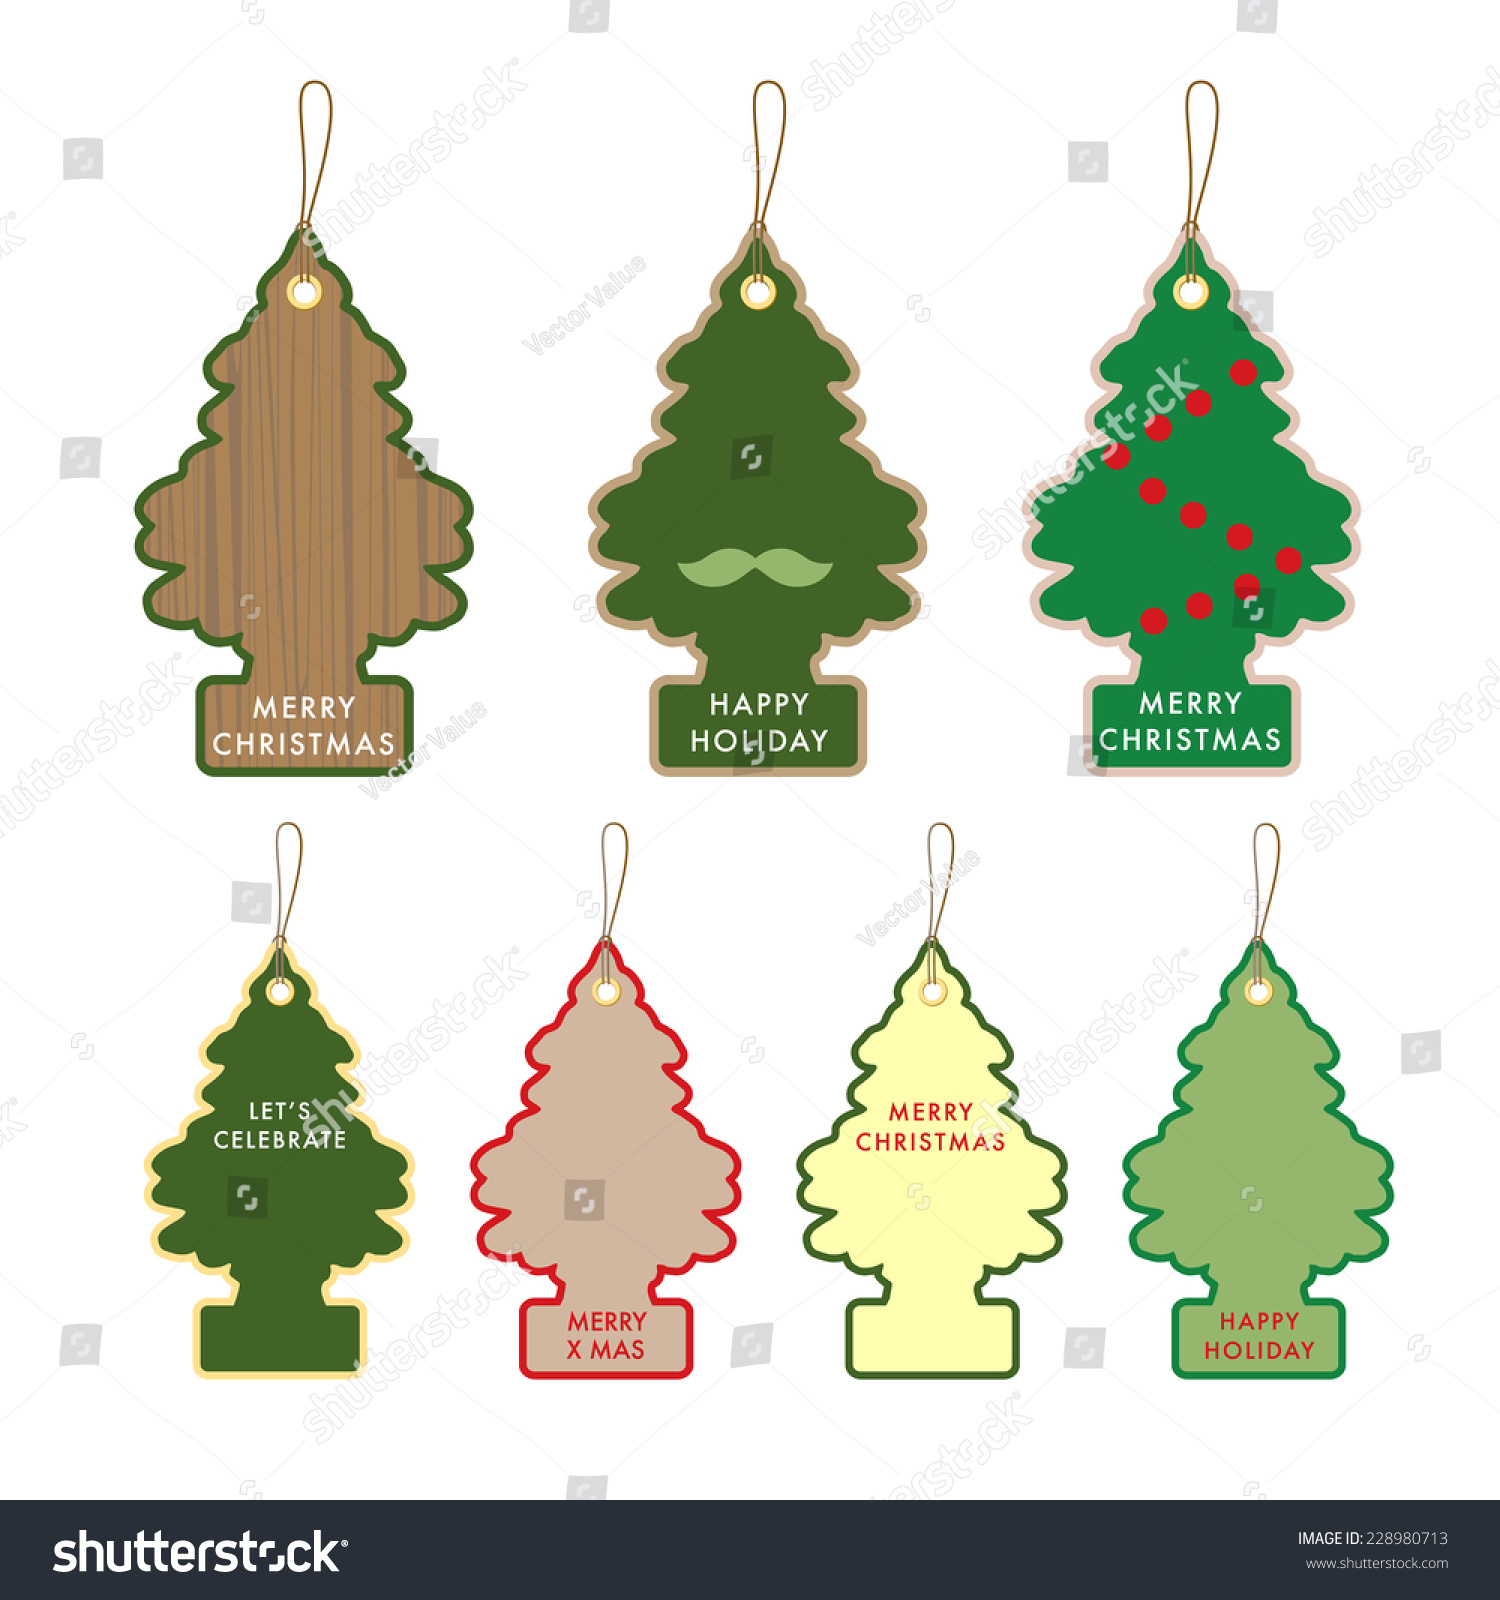 Collection Christmas Tree Gift Card Name Stock Vector (Royalty Free ...